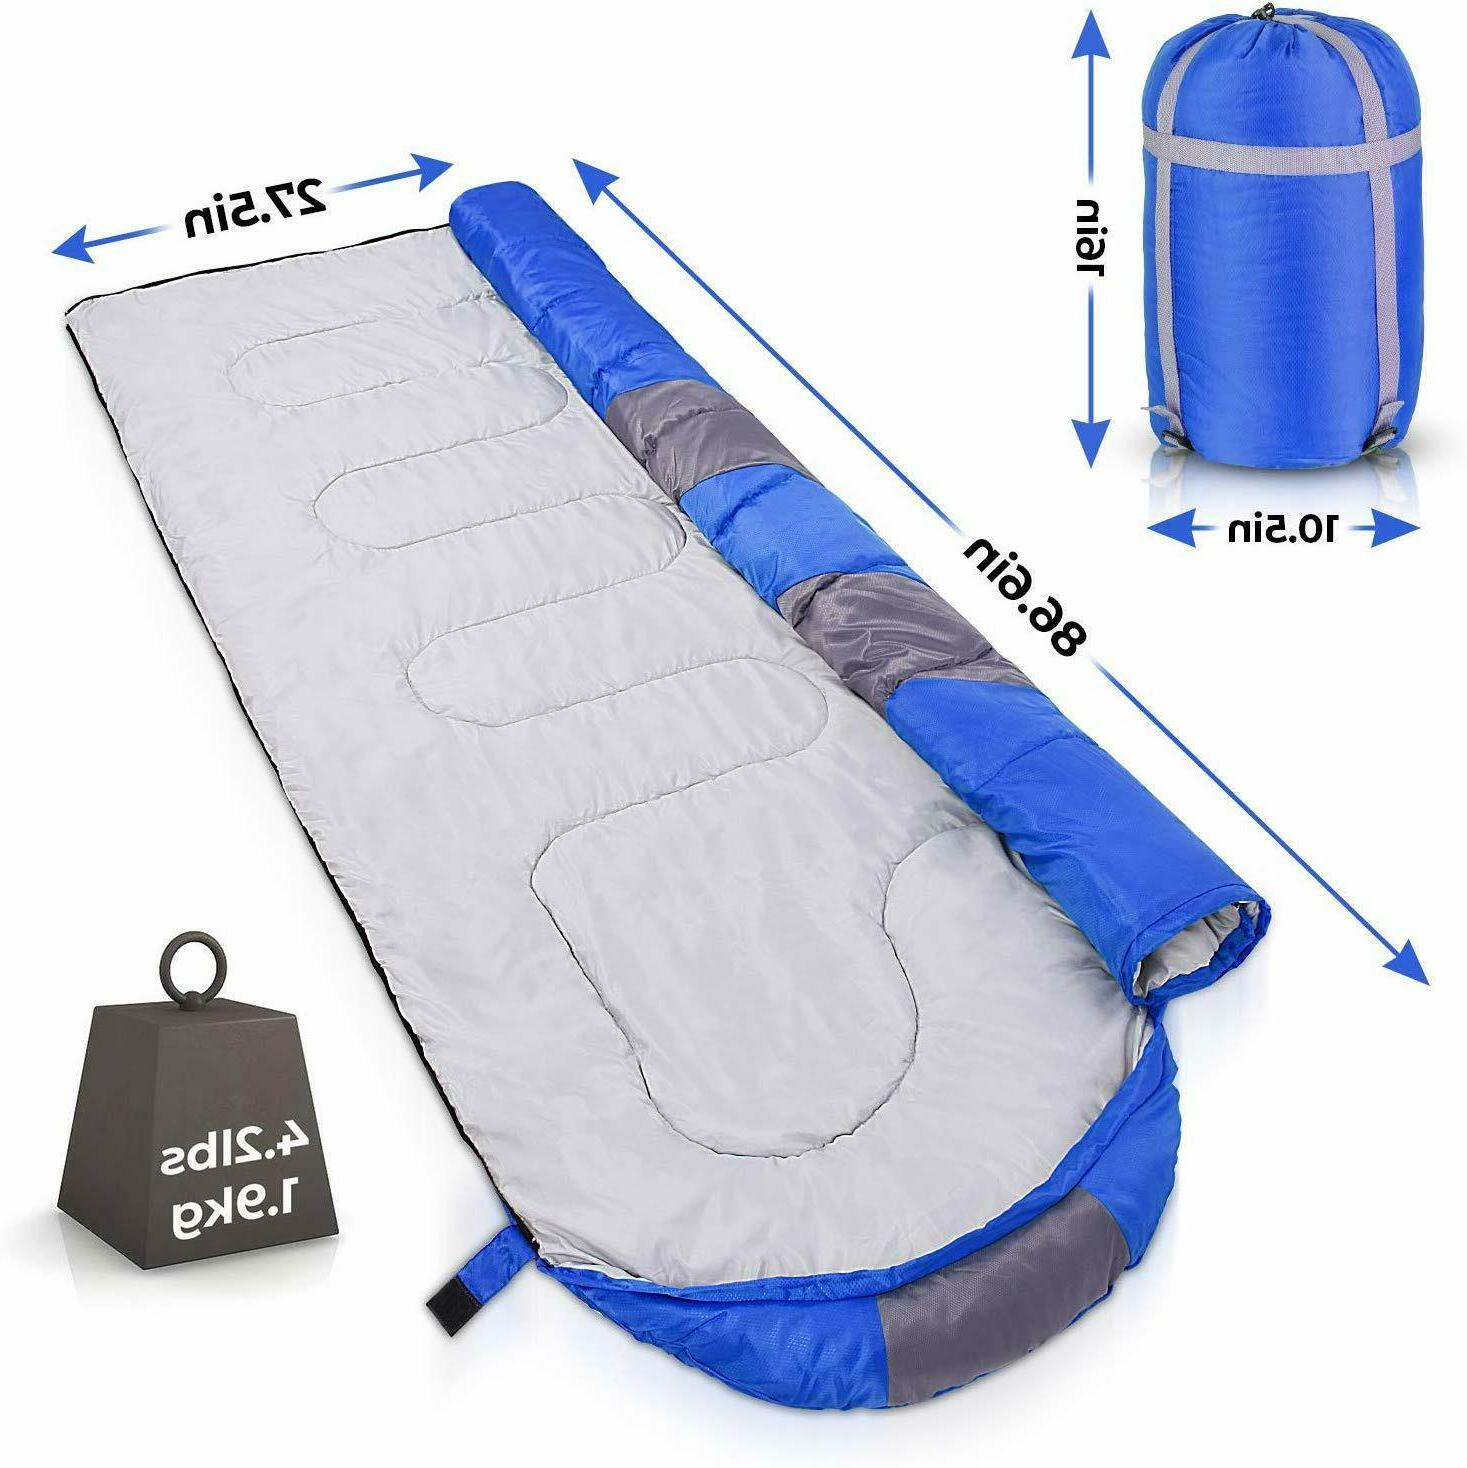 Sleeping Bag - Lightweight Portable, With Great Traveling, Camping, Hiking, Outdoor Activities.